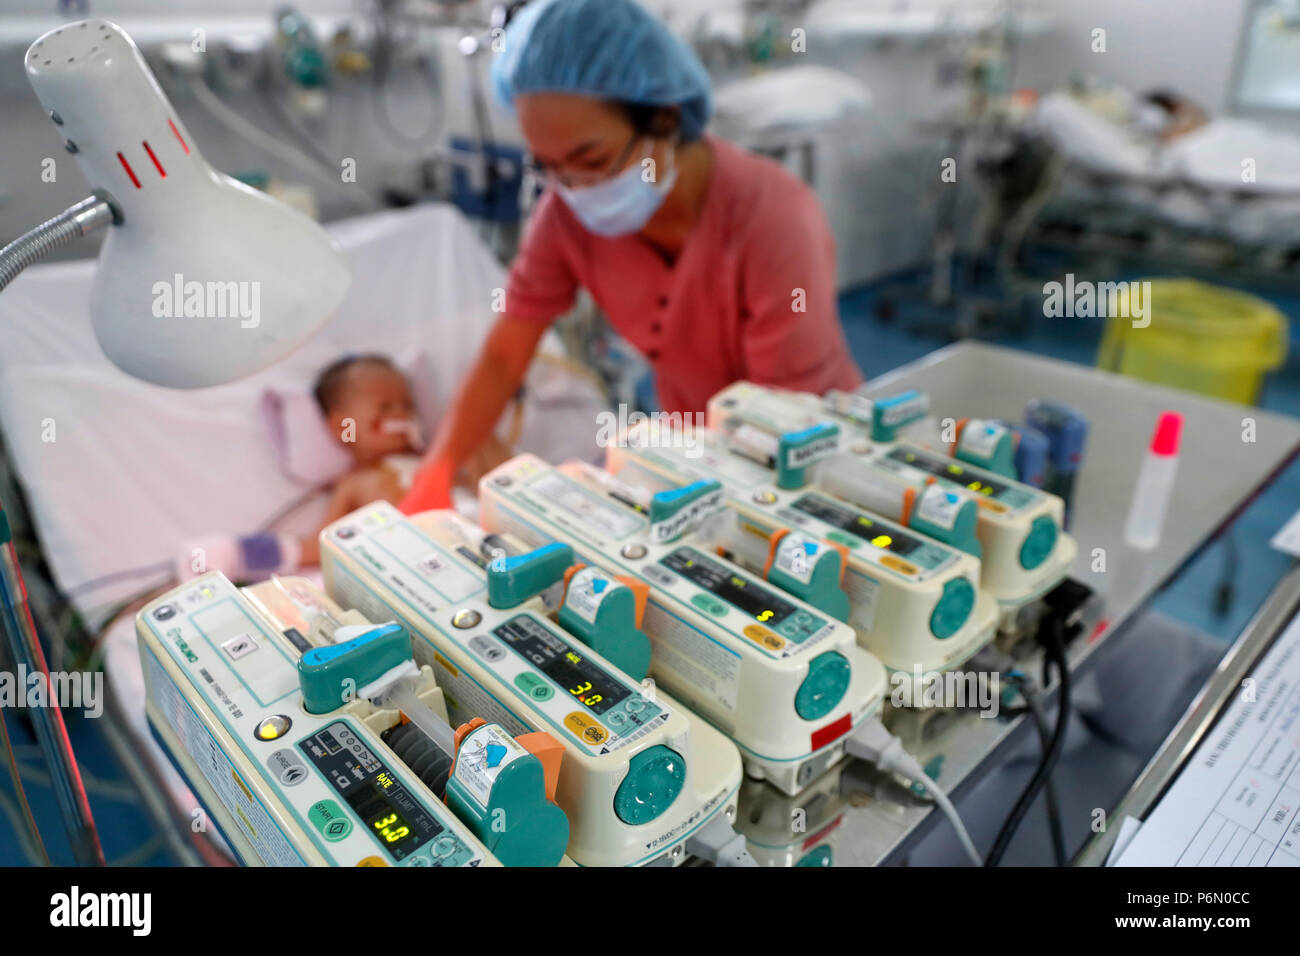 Tam Duc Cardiology Hospital. Vietnamese child suffering from heart diseases.  Intensive care unit. Ho Chi Minh City. Vietnam. - Stock Image